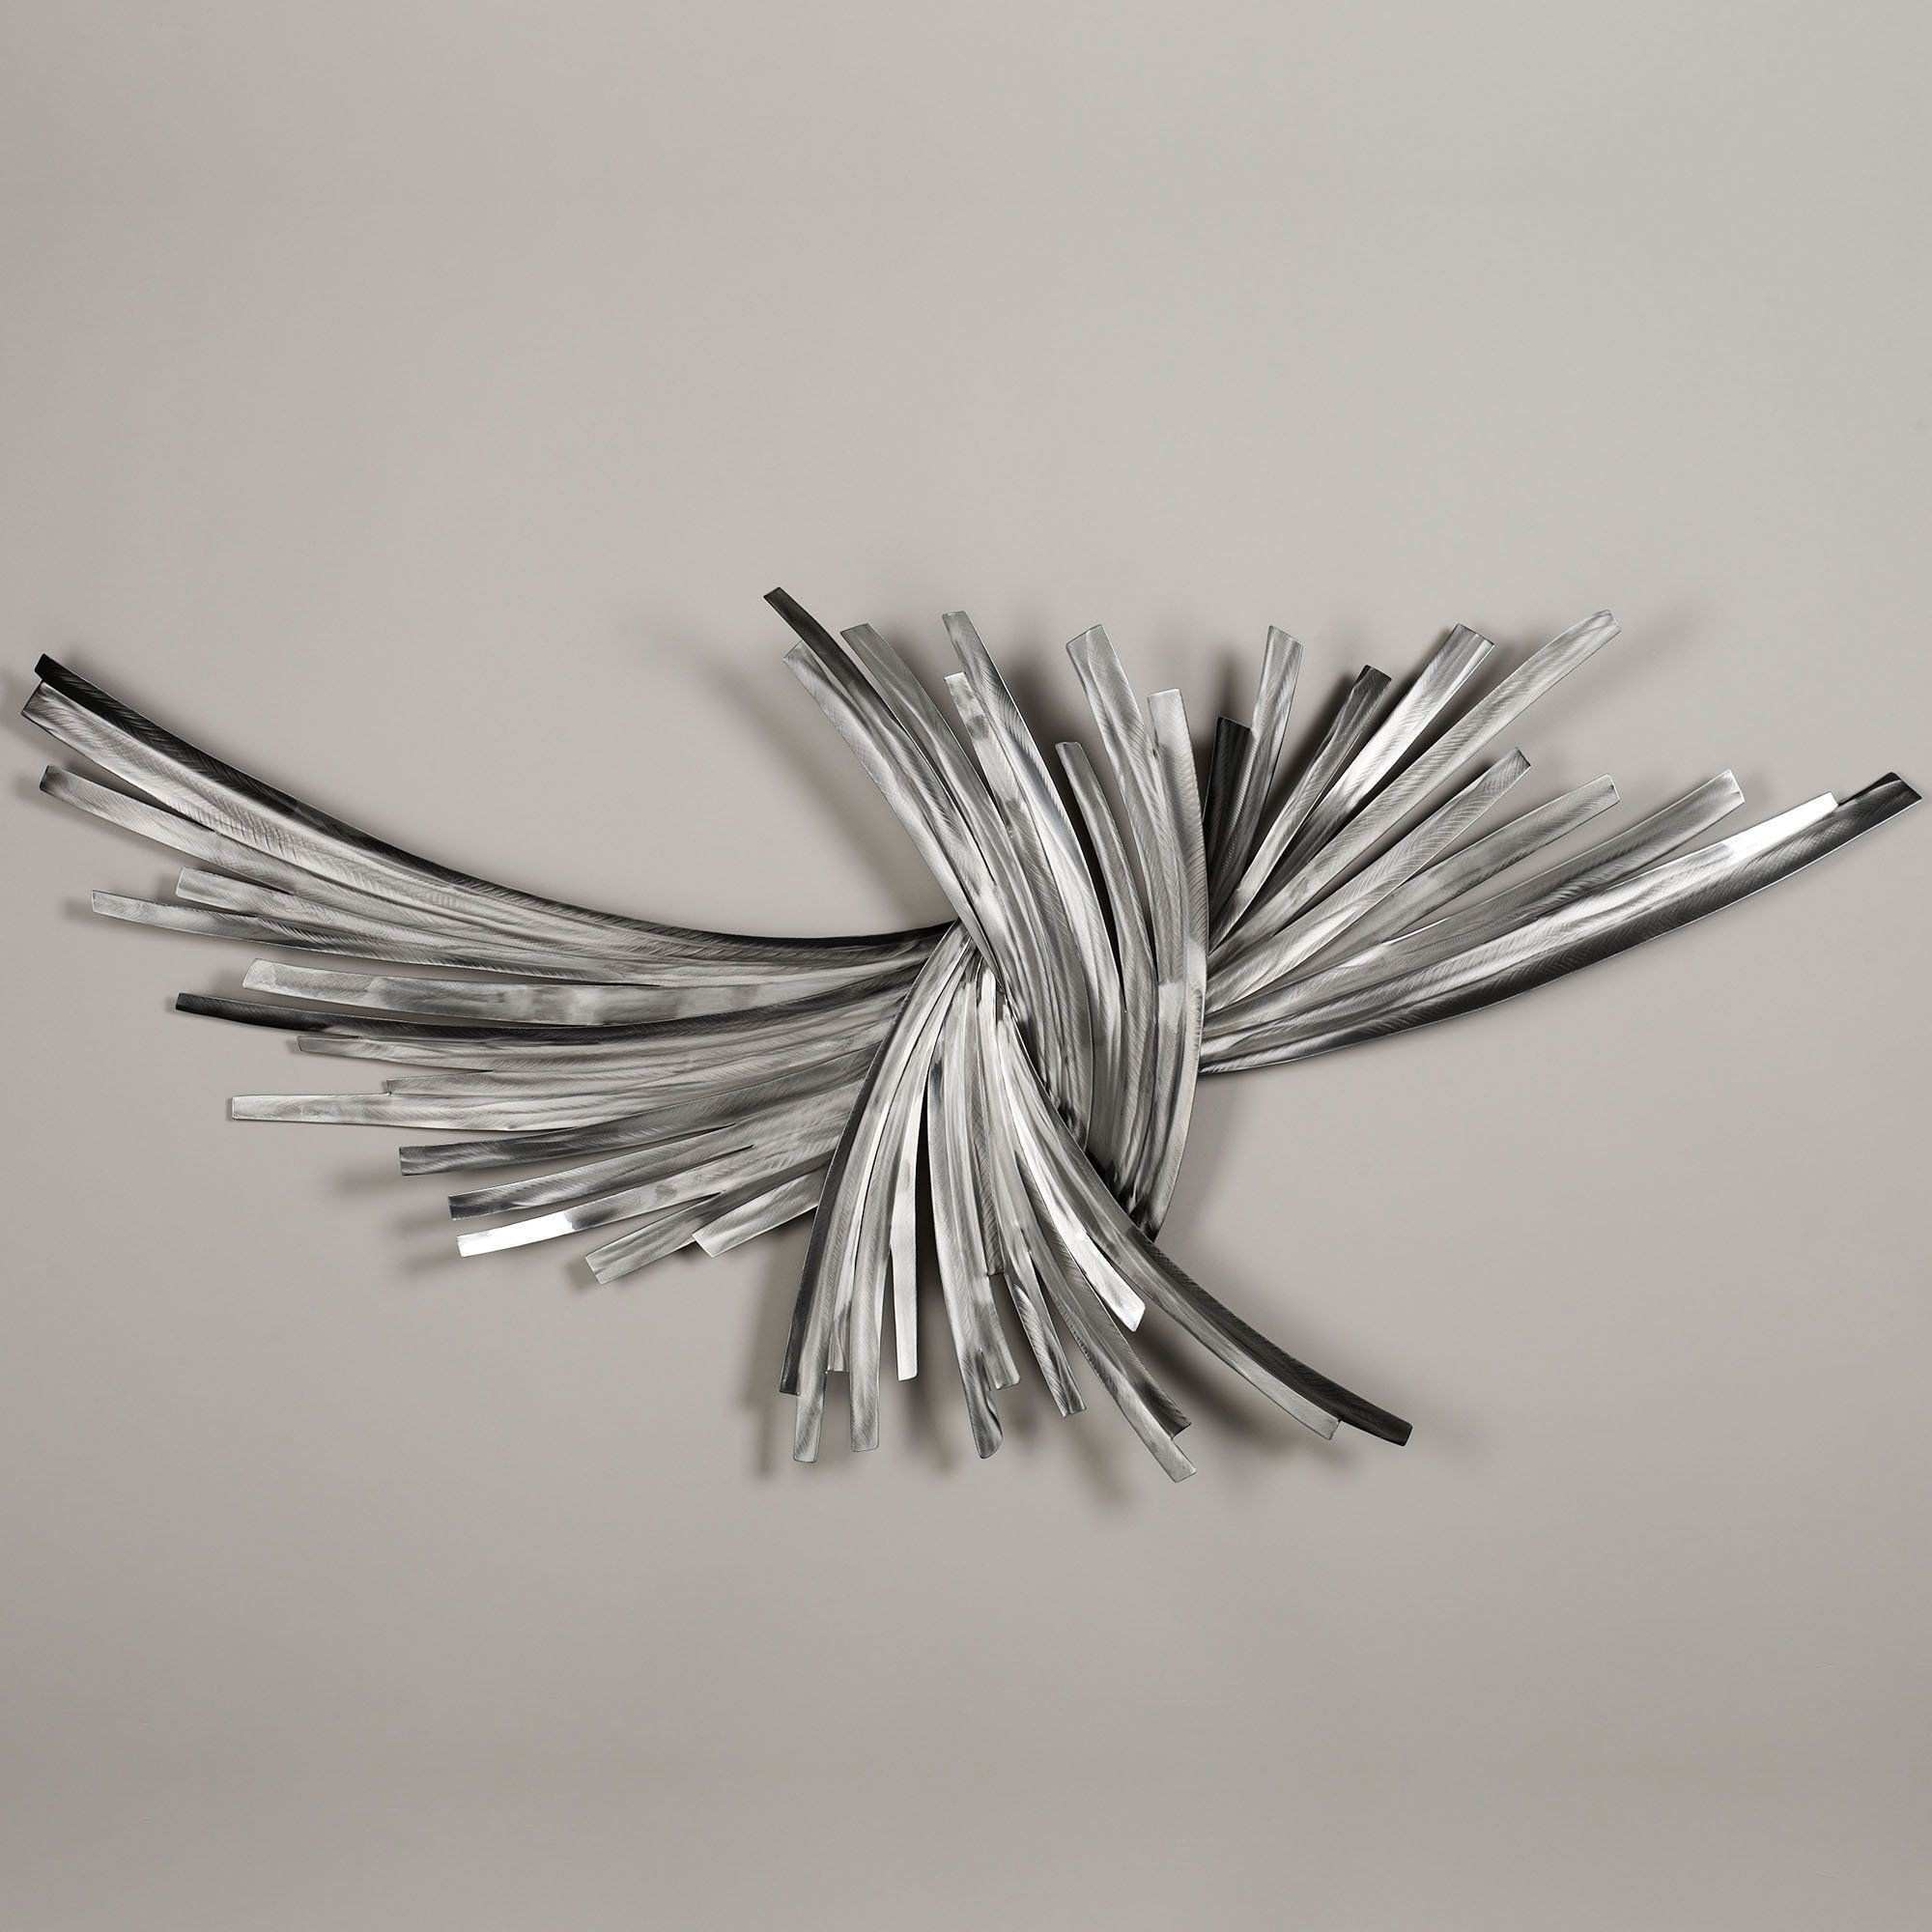 Infinity Silver Metal Wall Sculpture Pinterest